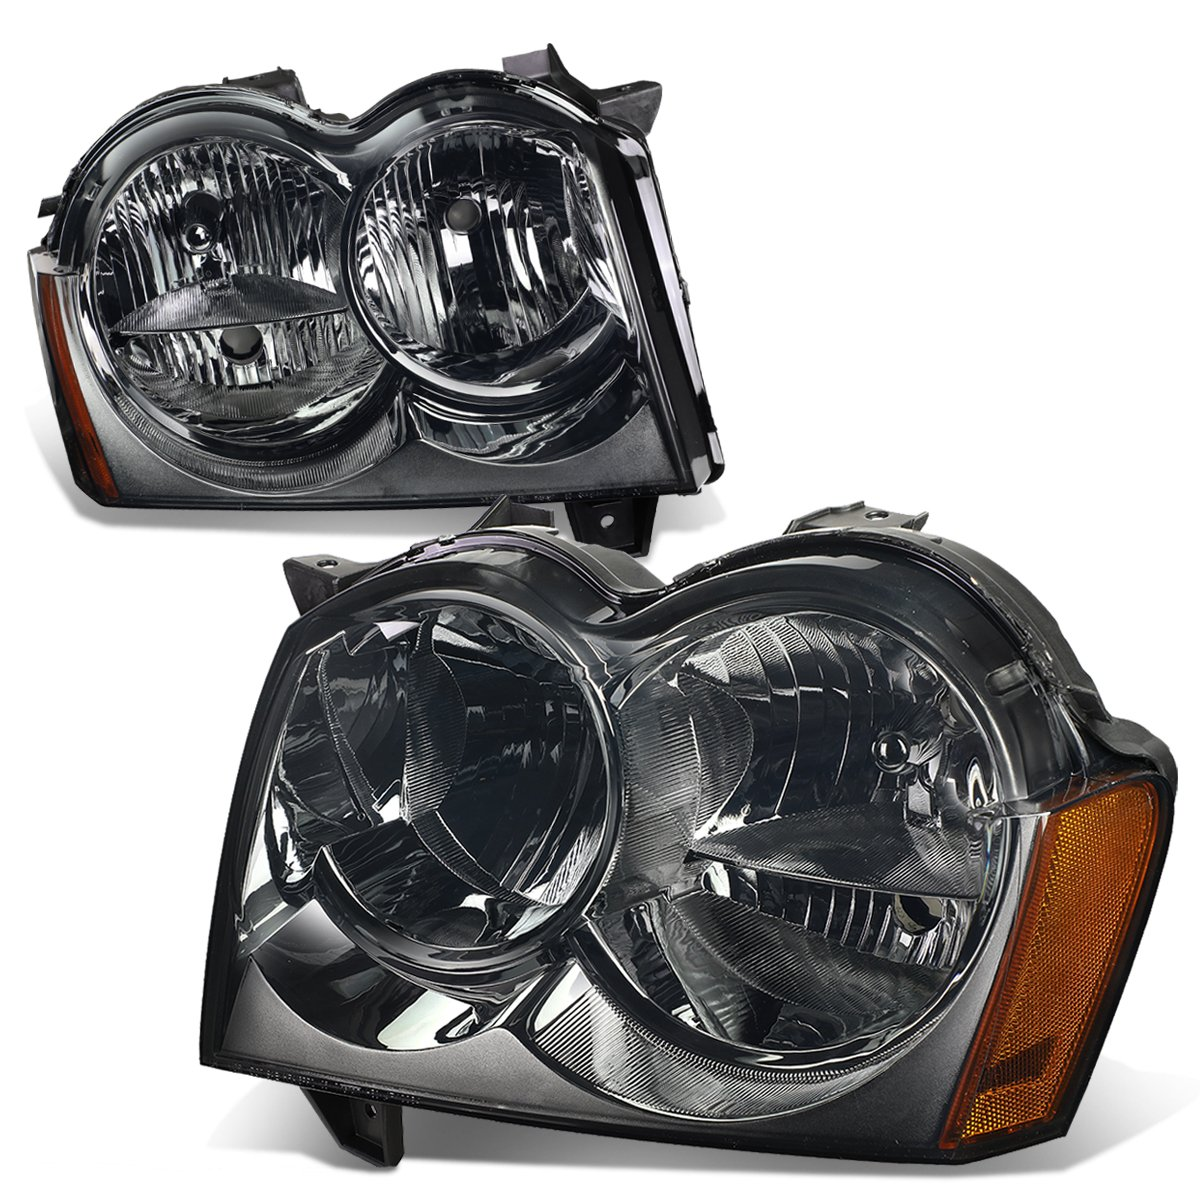 Jeep Grand Cherokee Wk 3rd Gen Pair Of Smoked Lens Amber Corner Headlight by Auto Dynasty